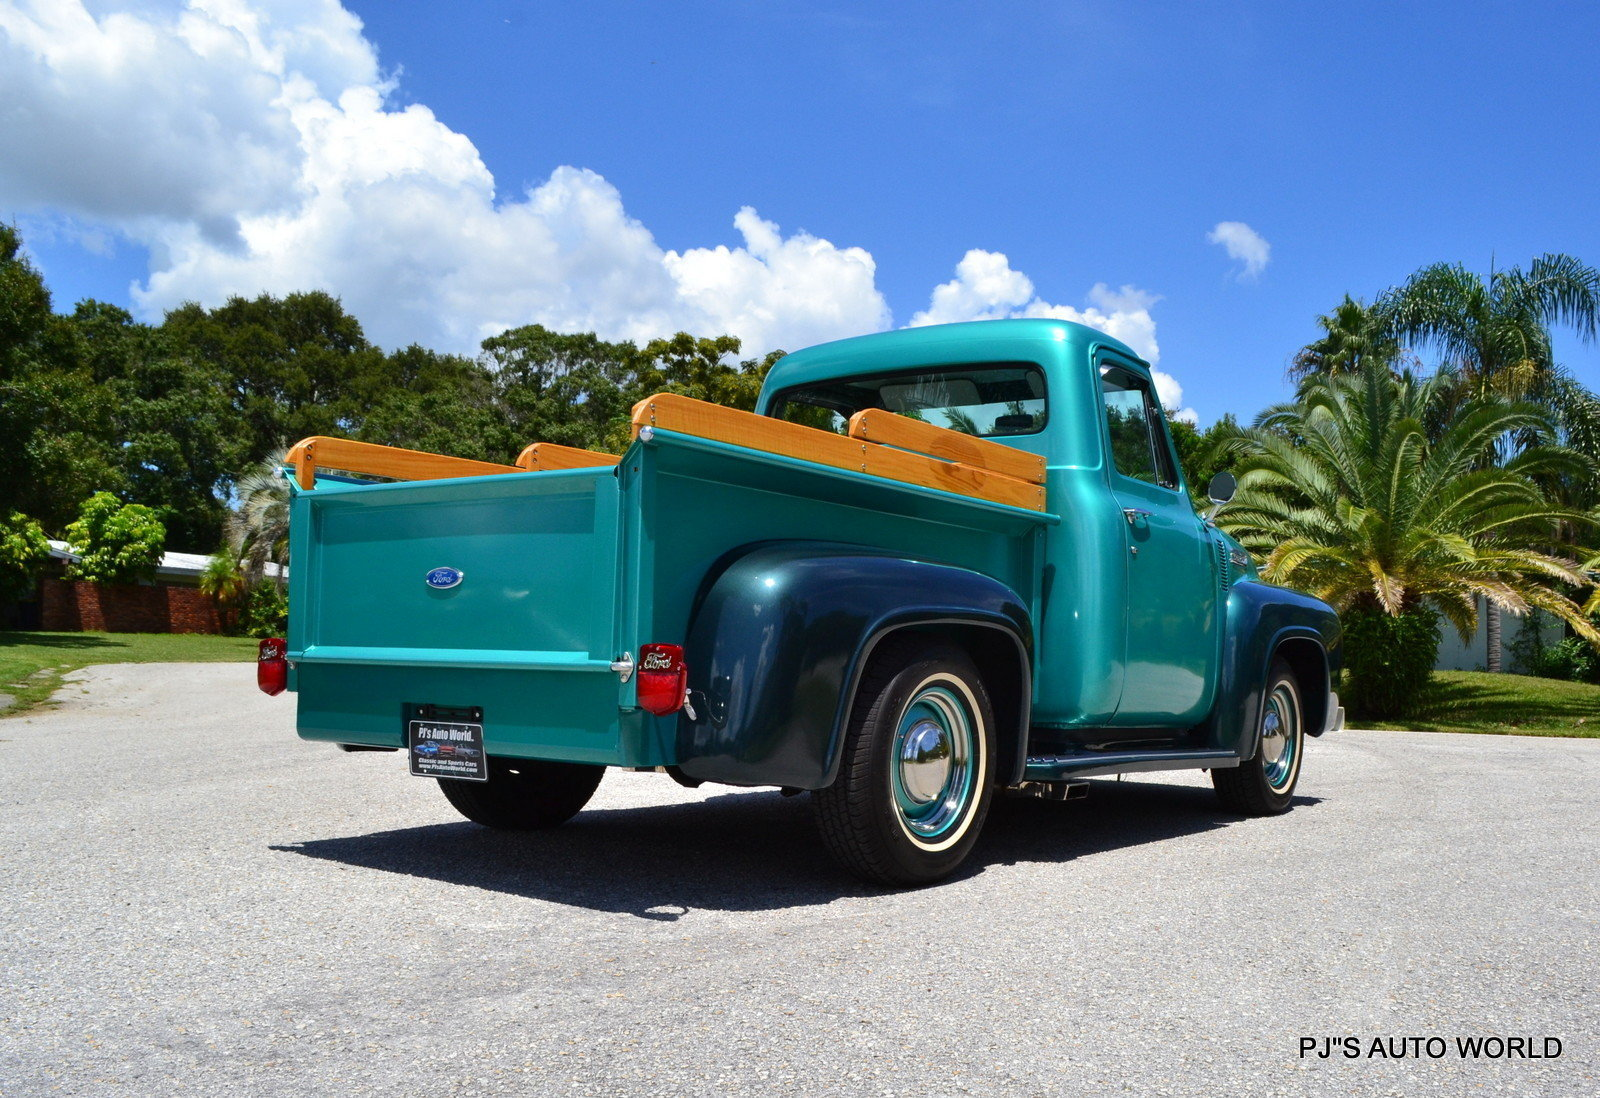 1954 Ford F100 Pjs Auto World Classic Cars For Sale Long Bed